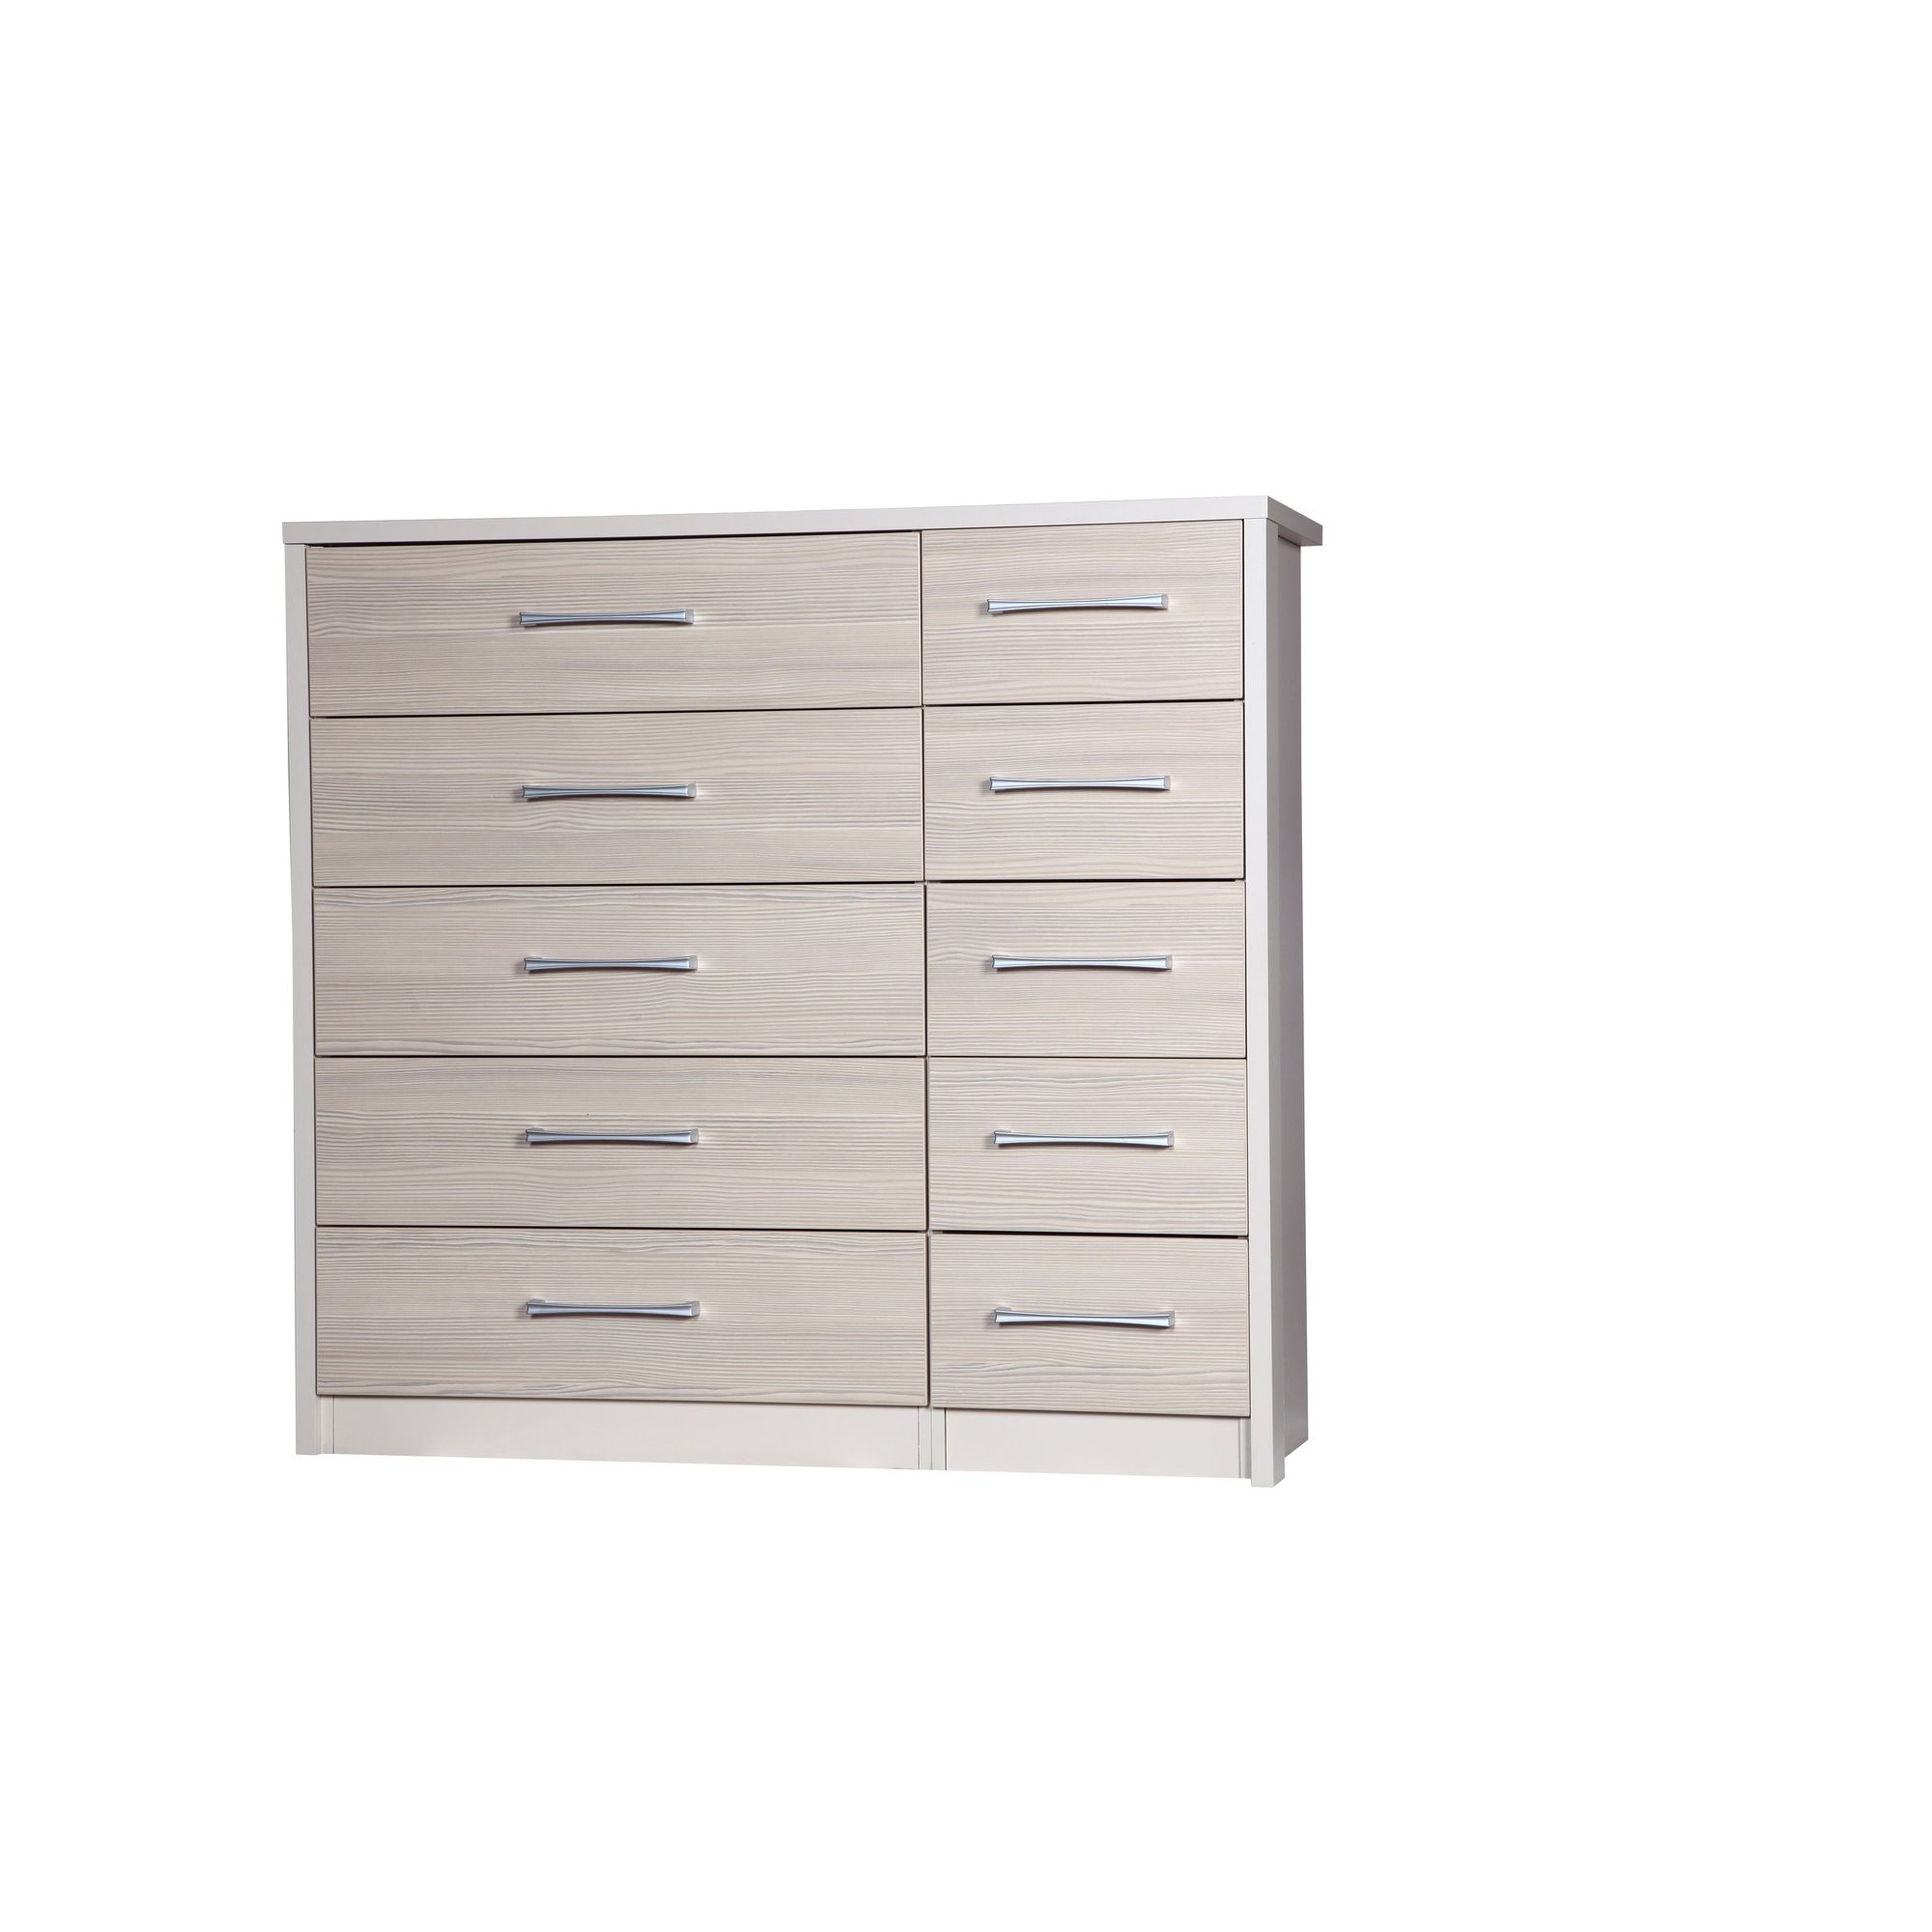 Alto Furniture Avola 5 Drawer Double Chest - Cream Carcass With Champagne Avola at Tesco Direct